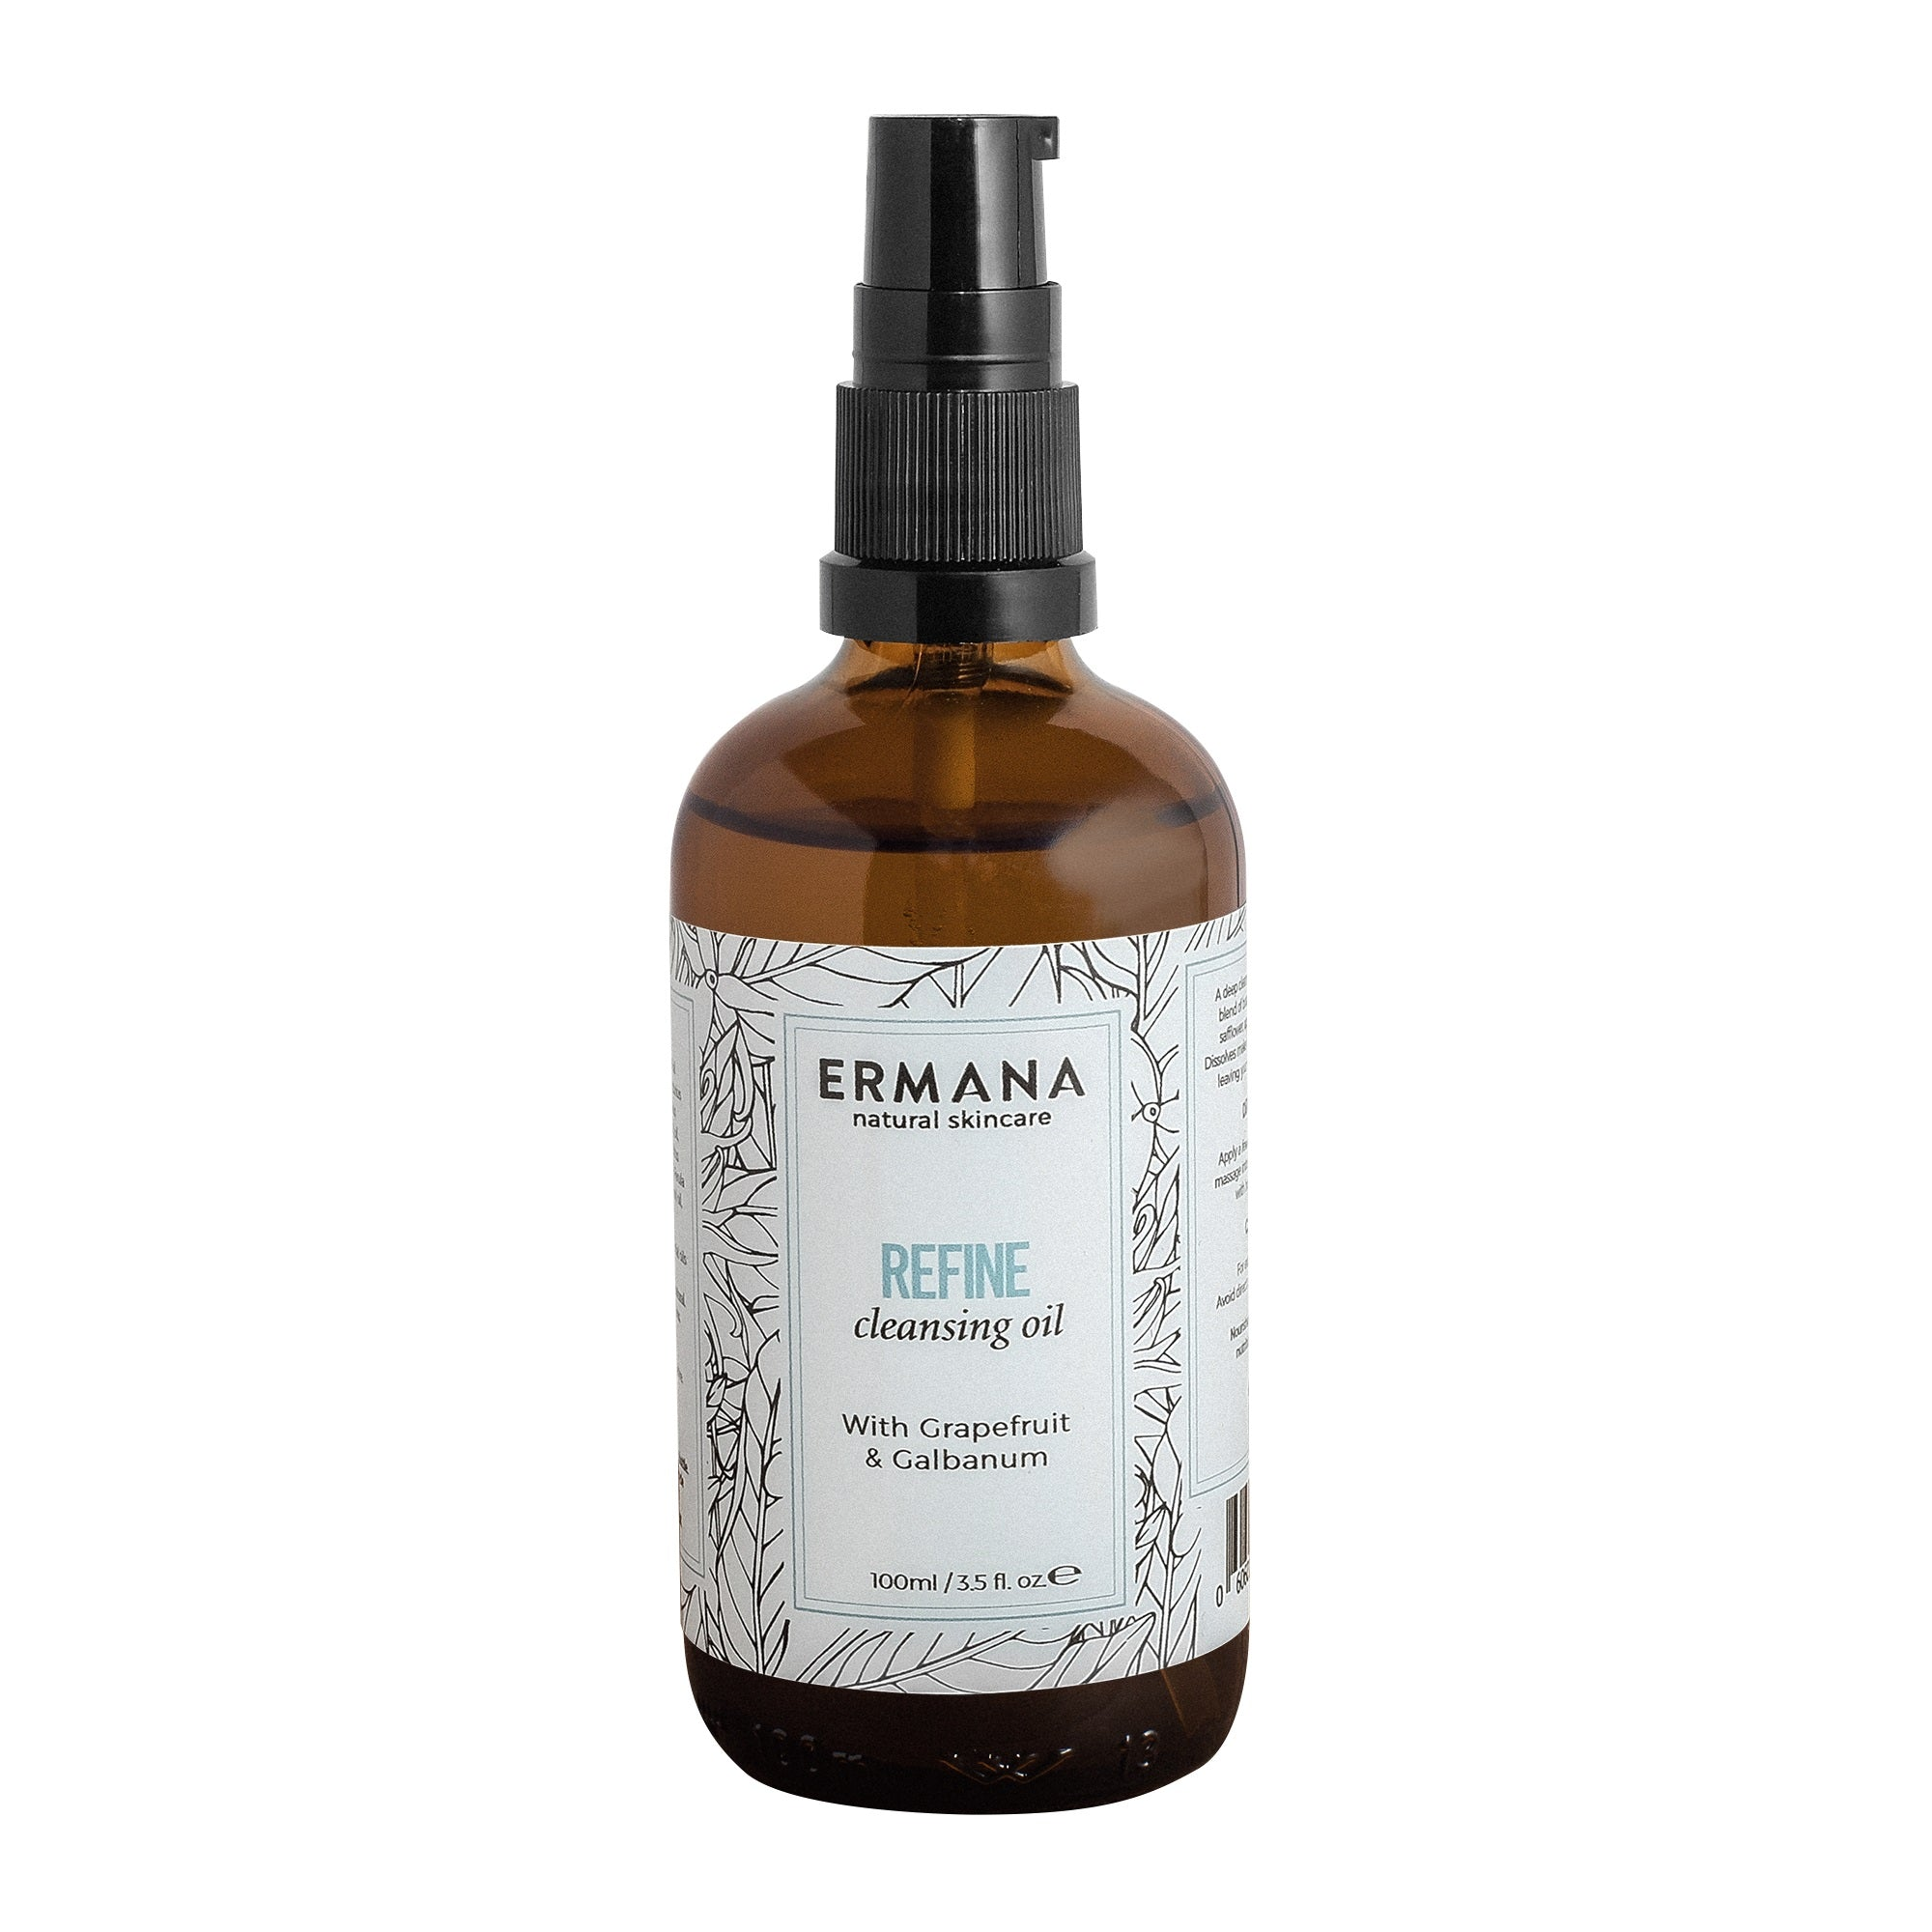 Refine Cleansing Oil 100ml - Ermana Natural Skincare